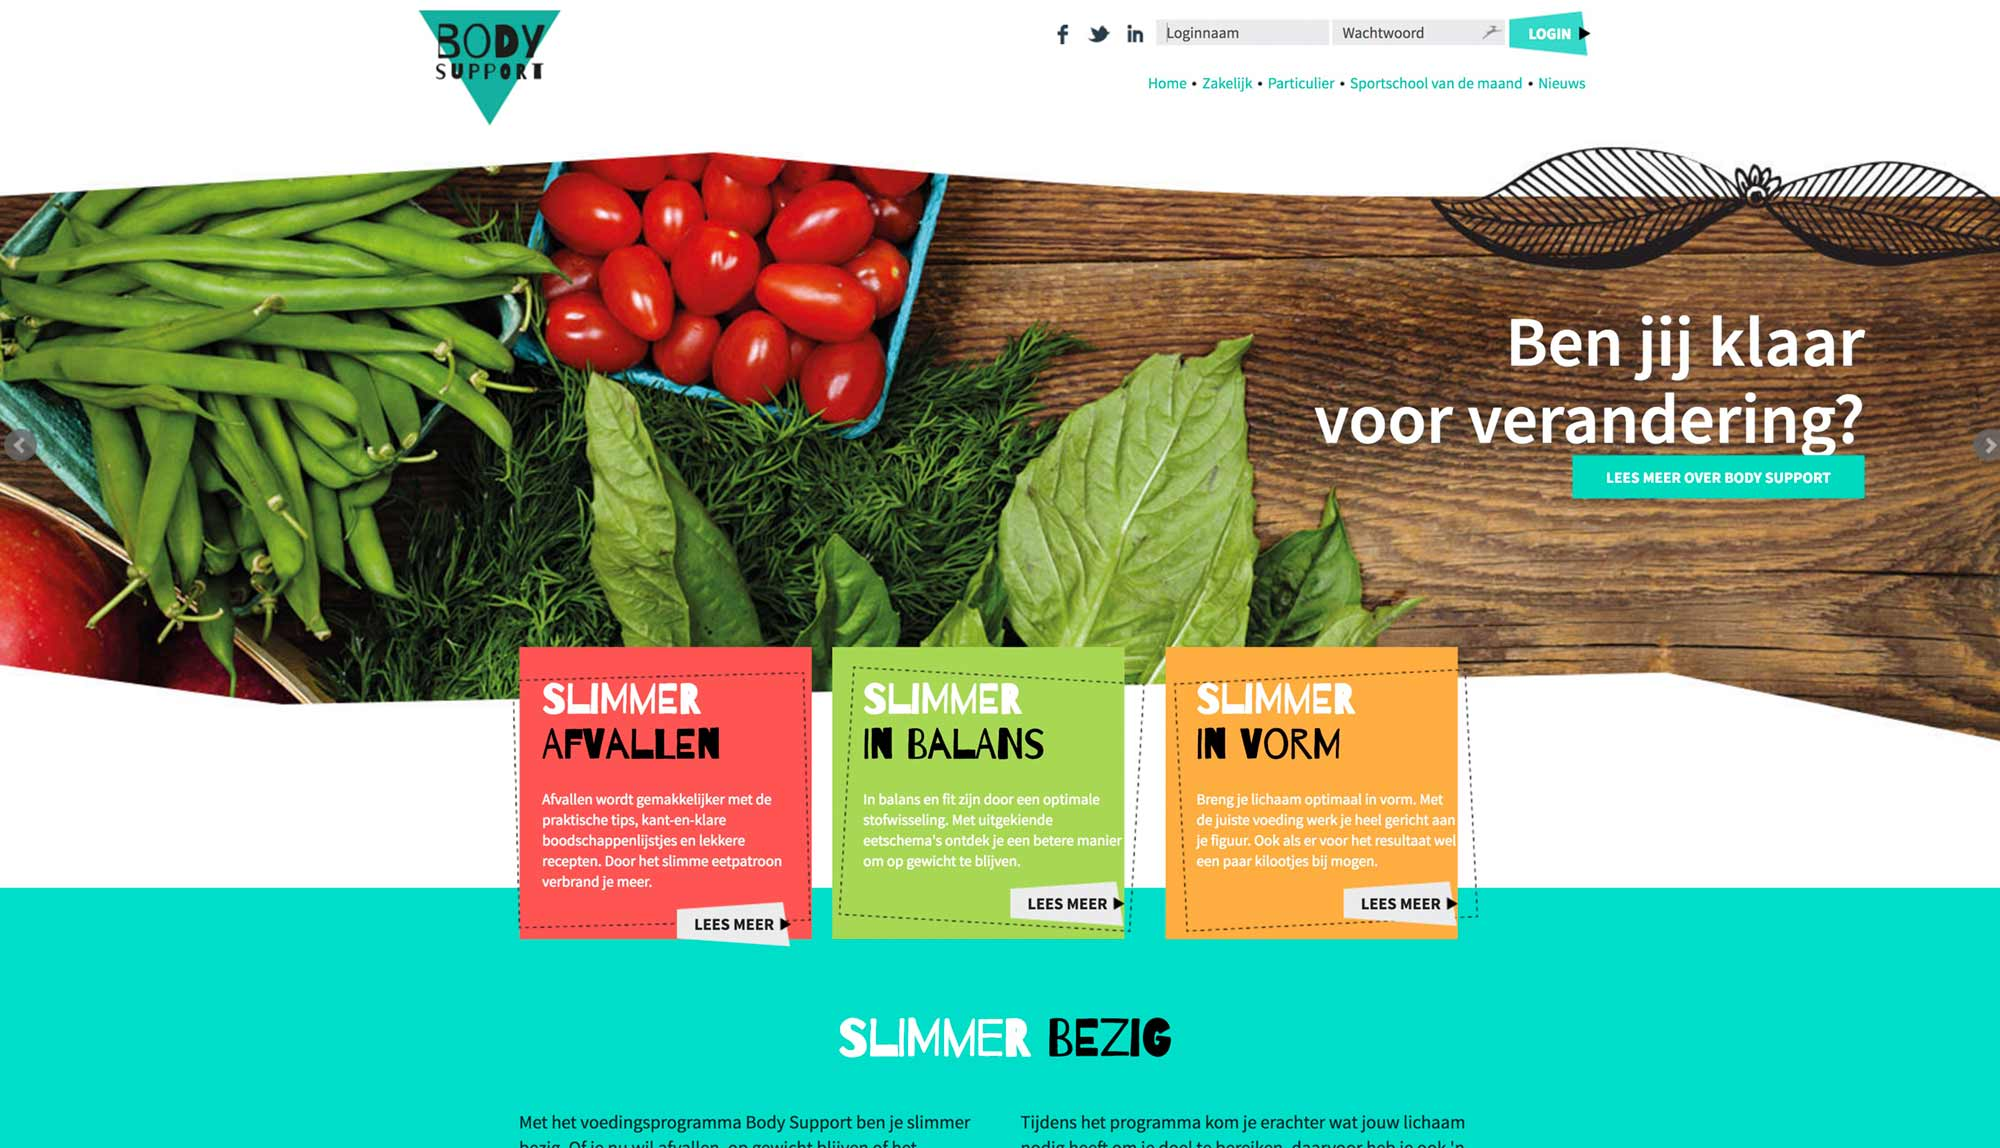 voeding met body support